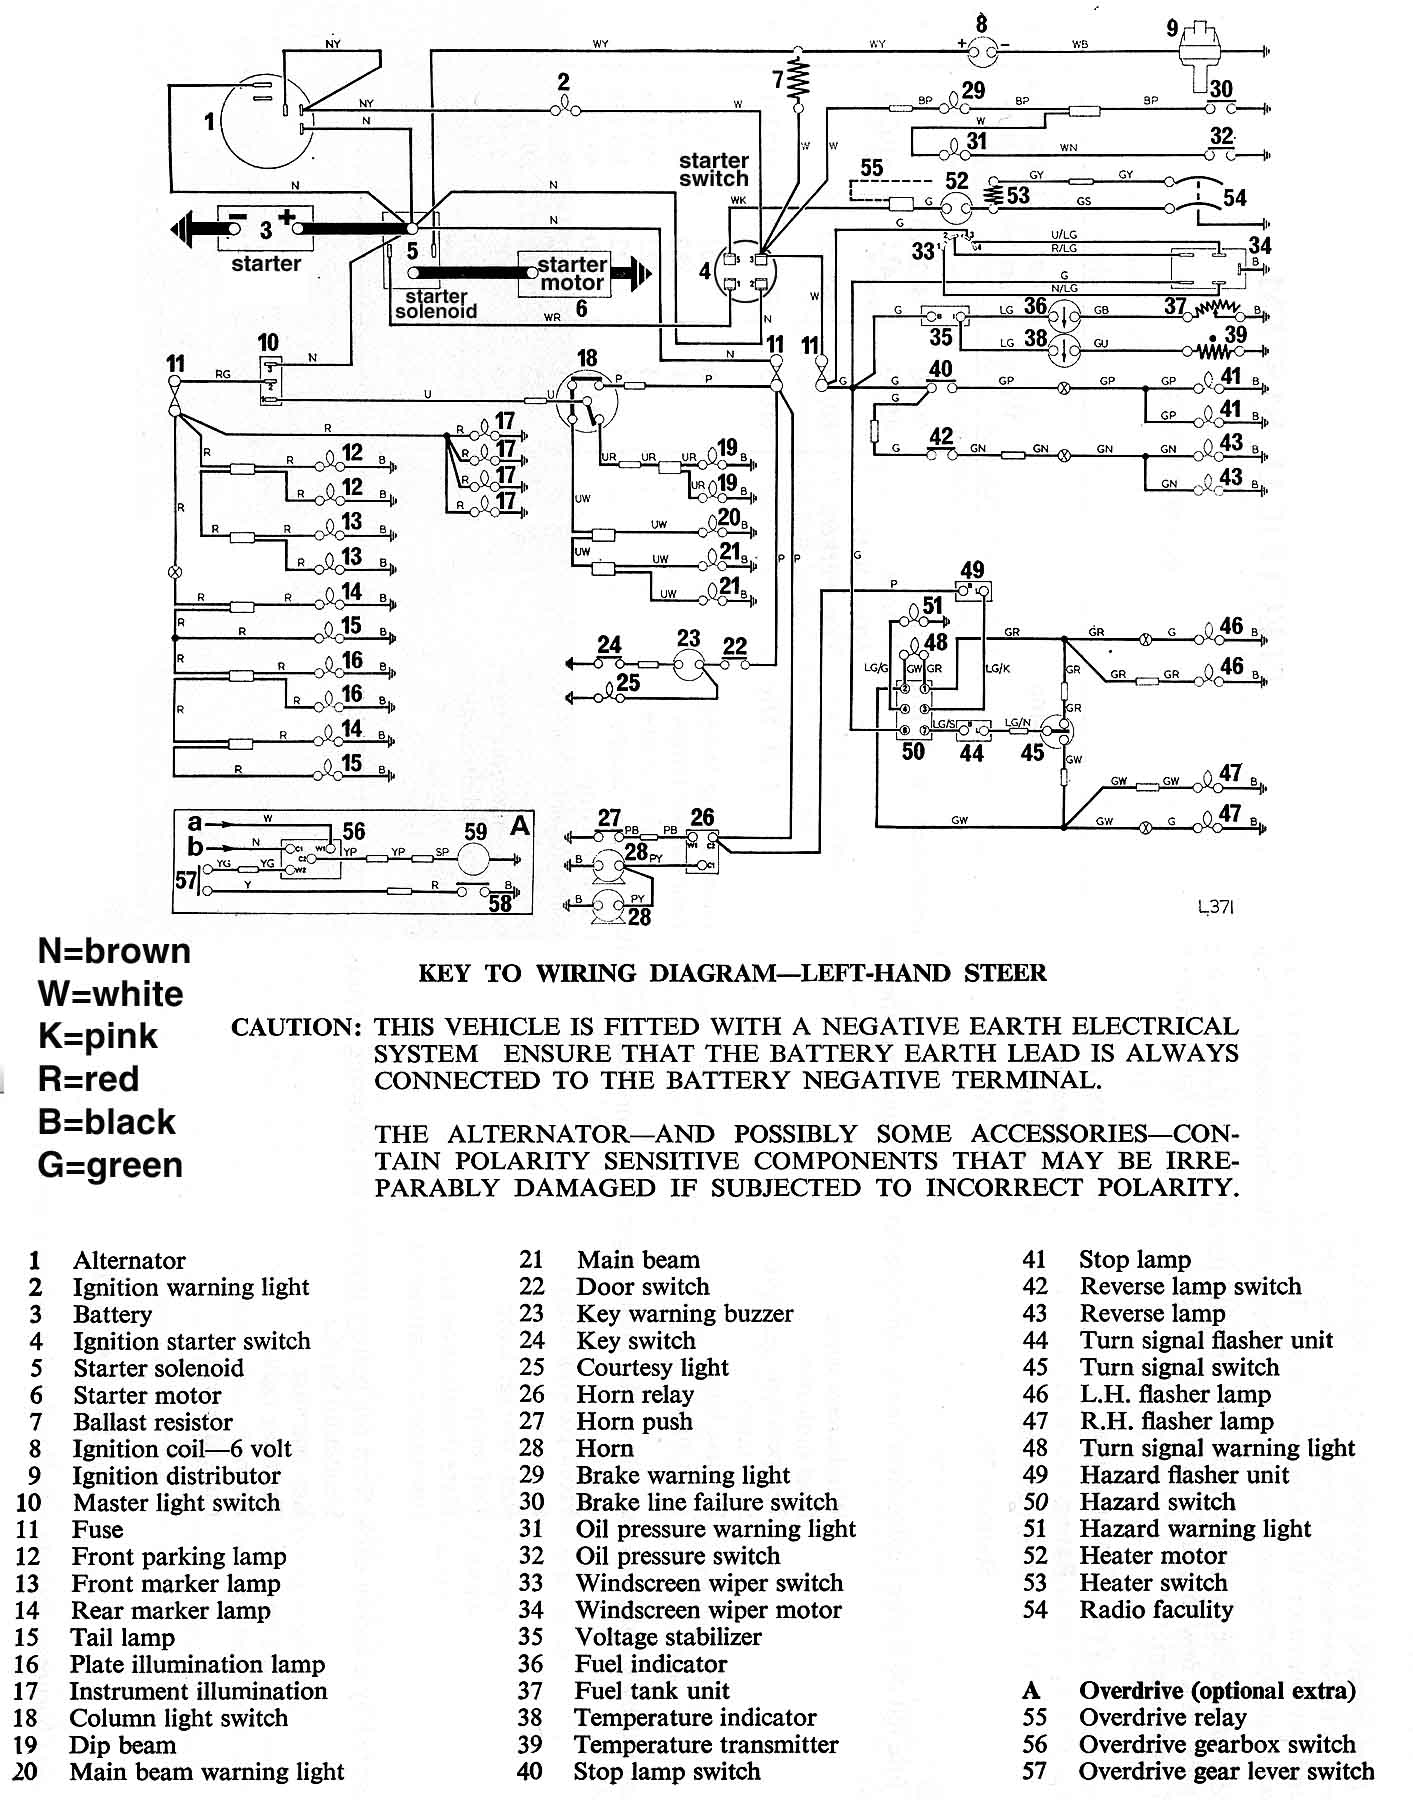 Wiring Schematics And Diagrams Triumph Spitfire Gt6 Herald Diagram Schematic To Switch Mkiv From The Factory Manual